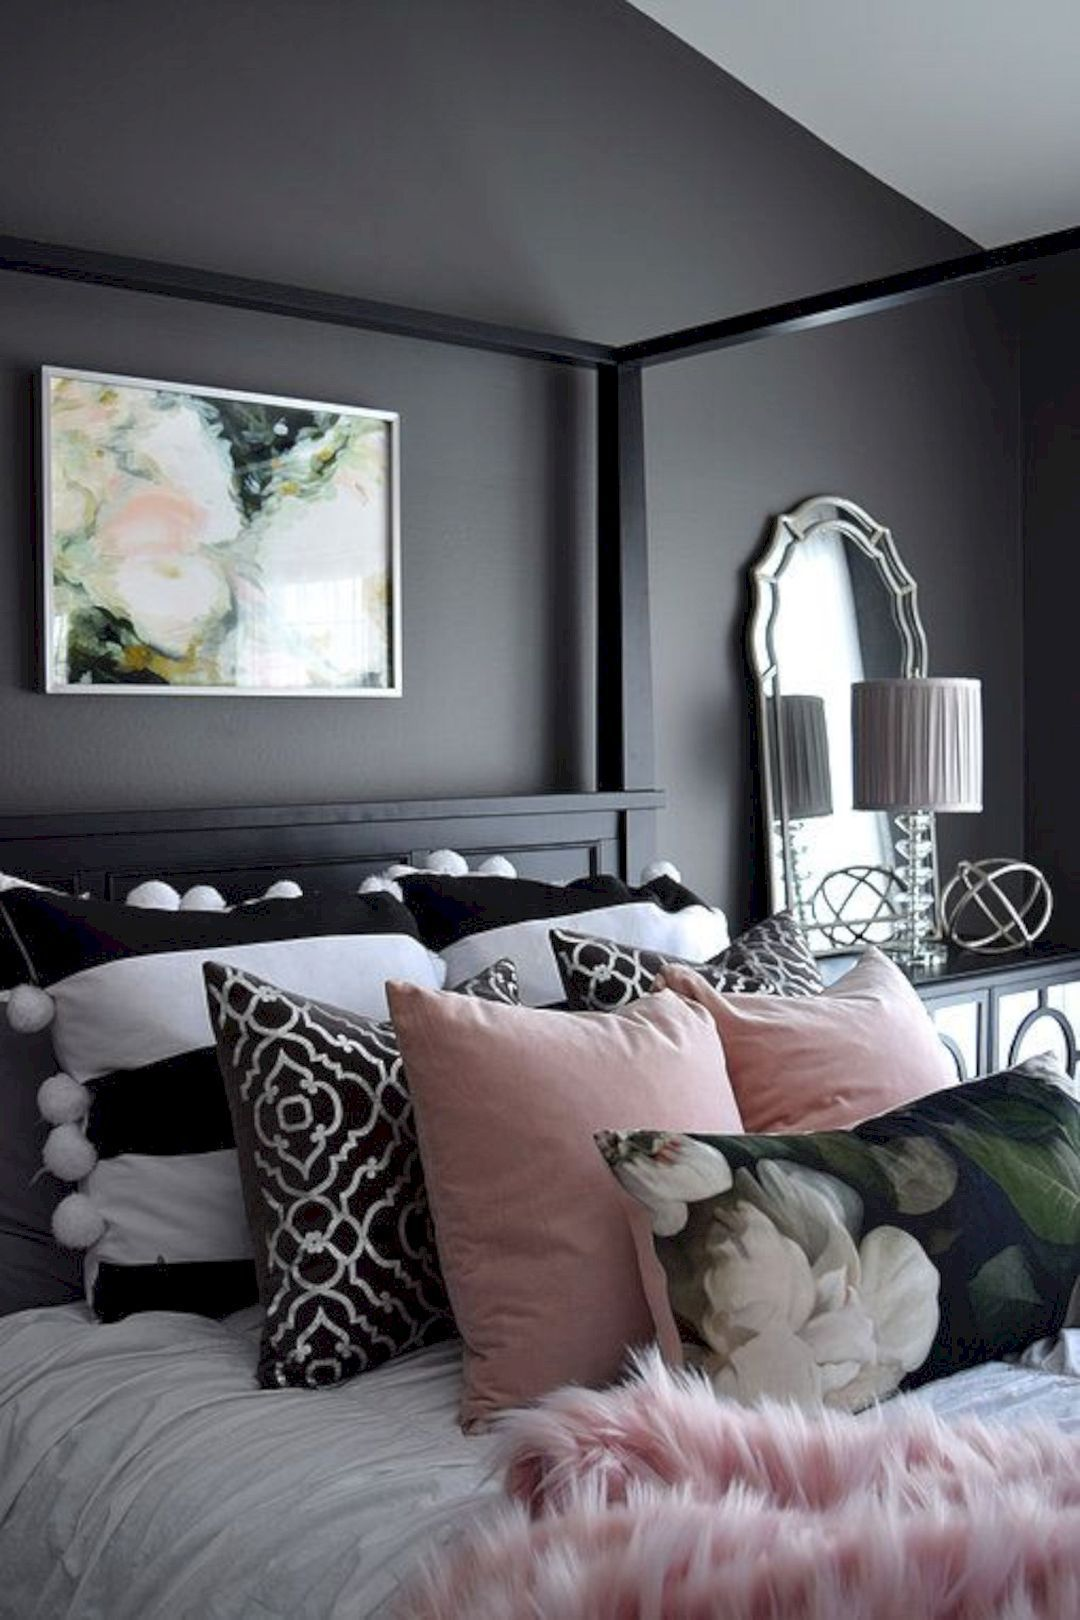 16 Awesome Black Furniture Bedroom Ideas Black bedroom